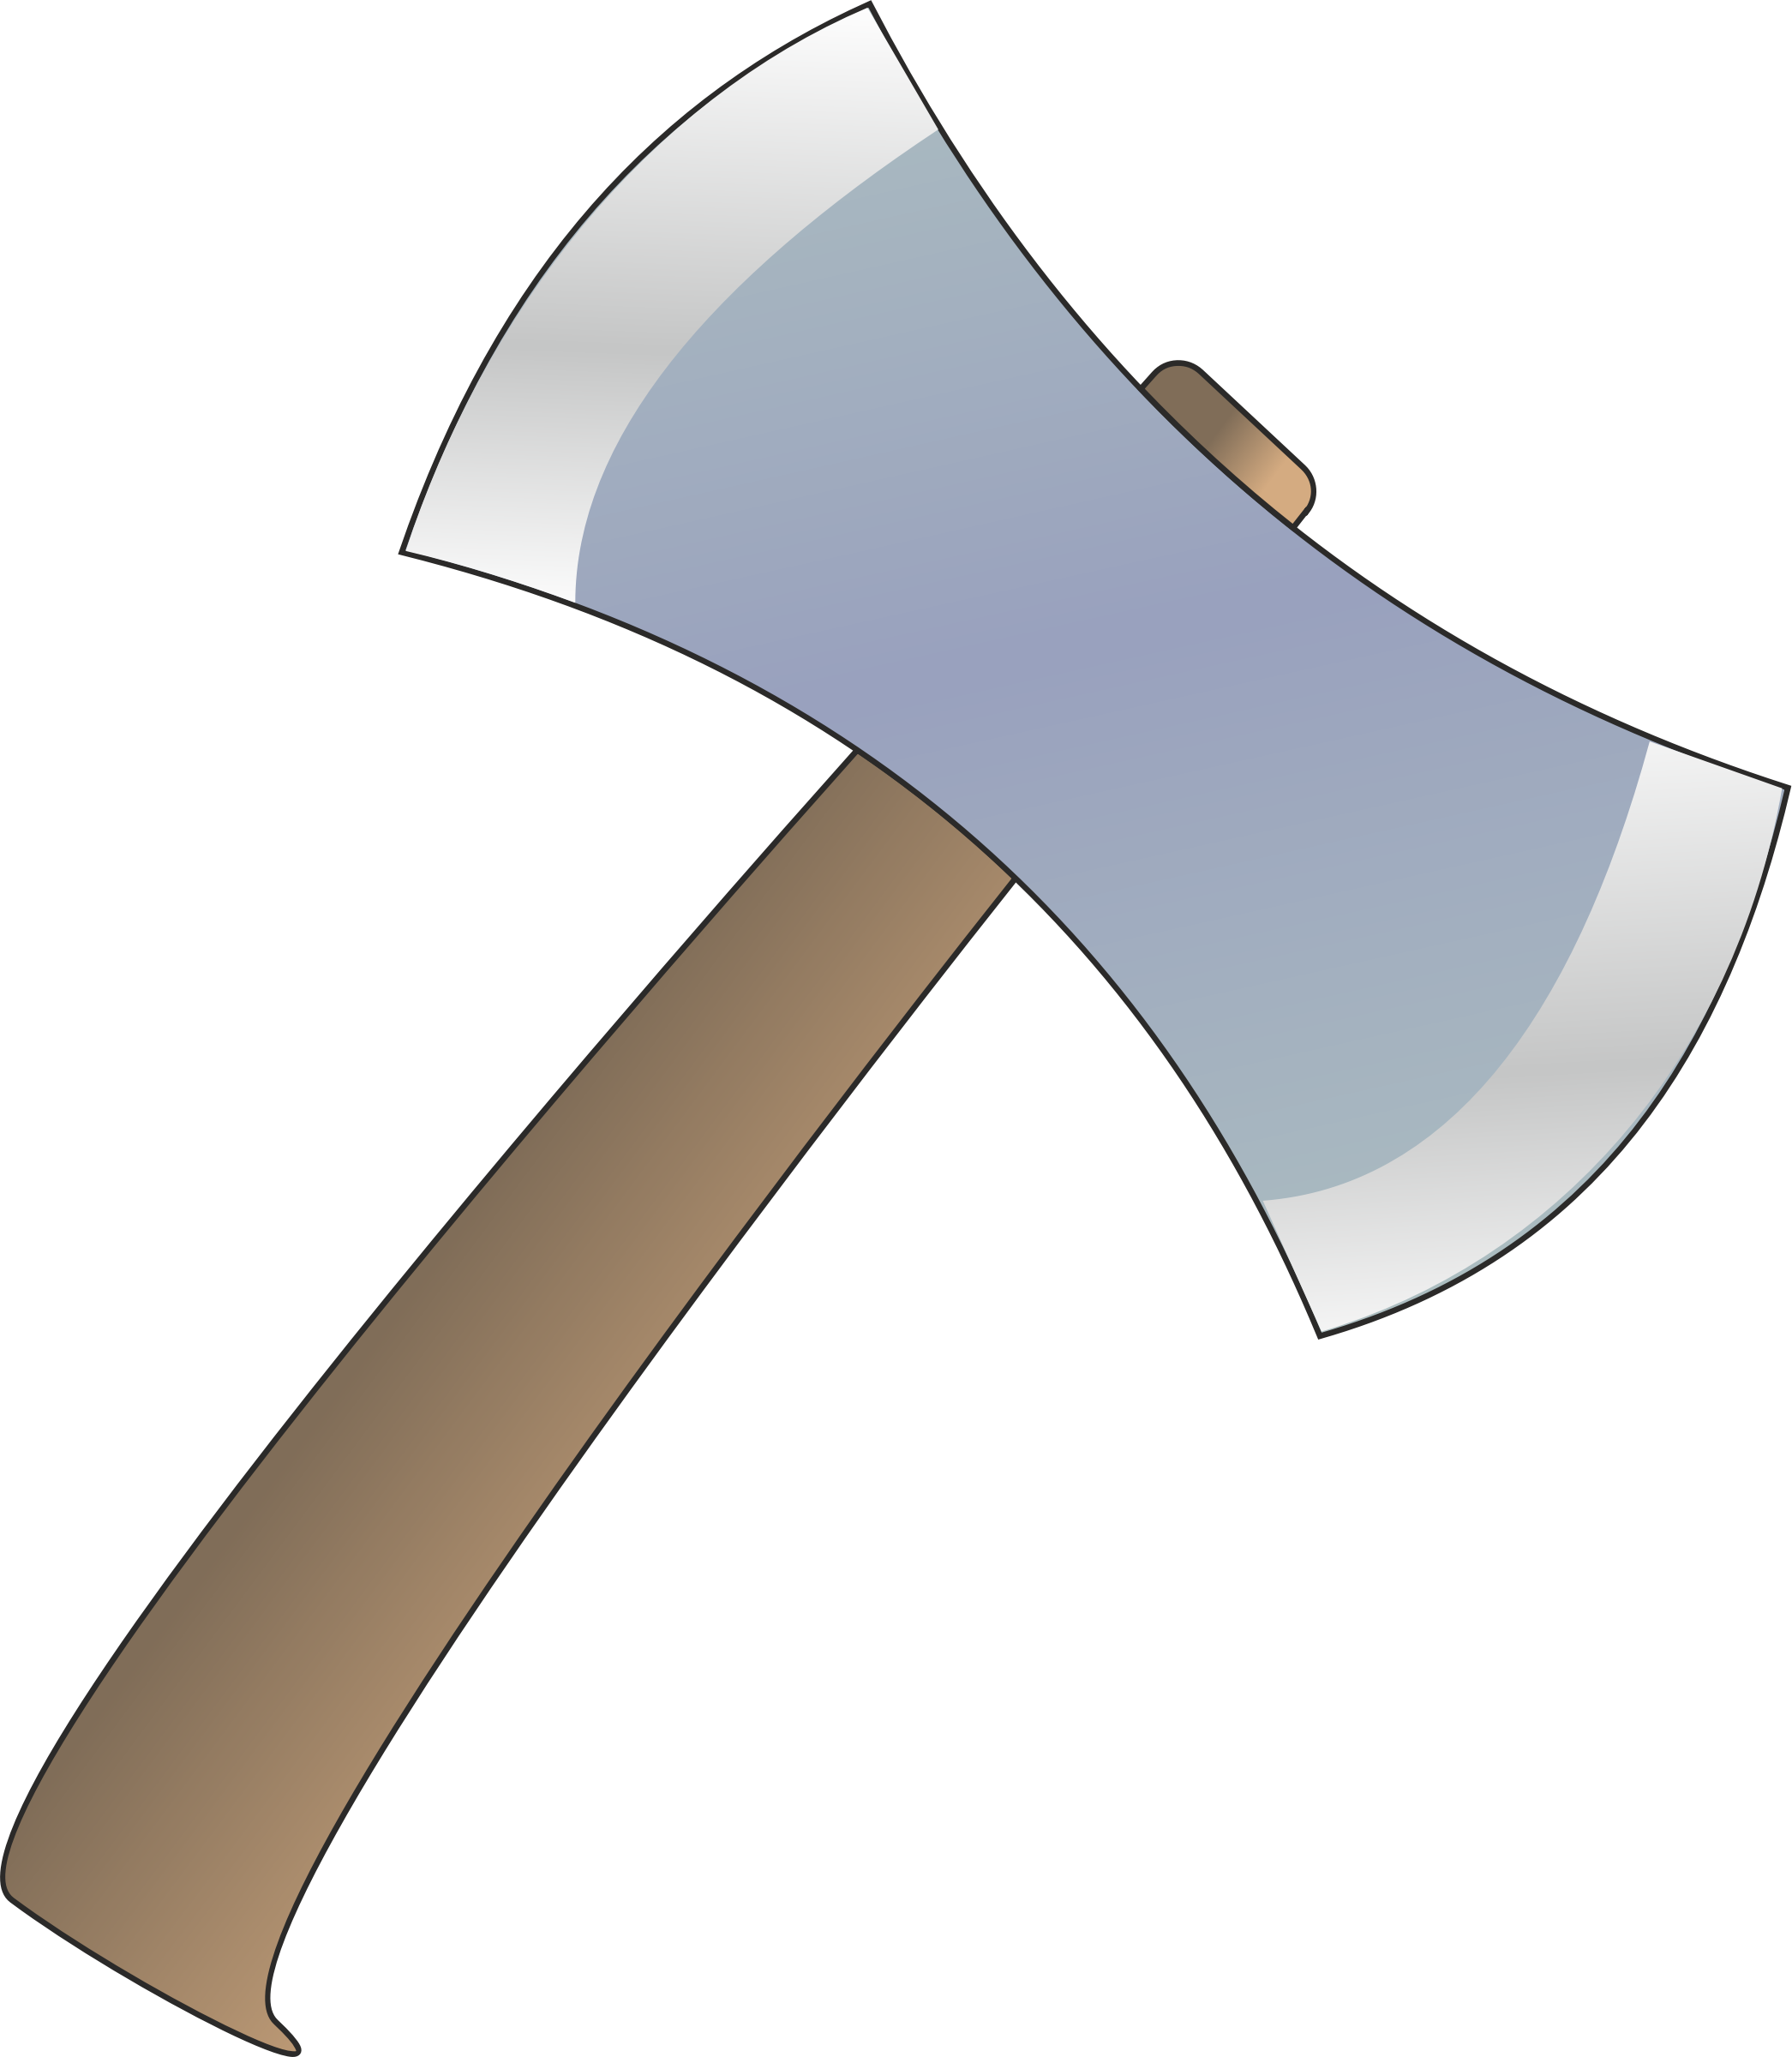 clipart free library Axe clipart log clipart. Free on dumielauxepices net.